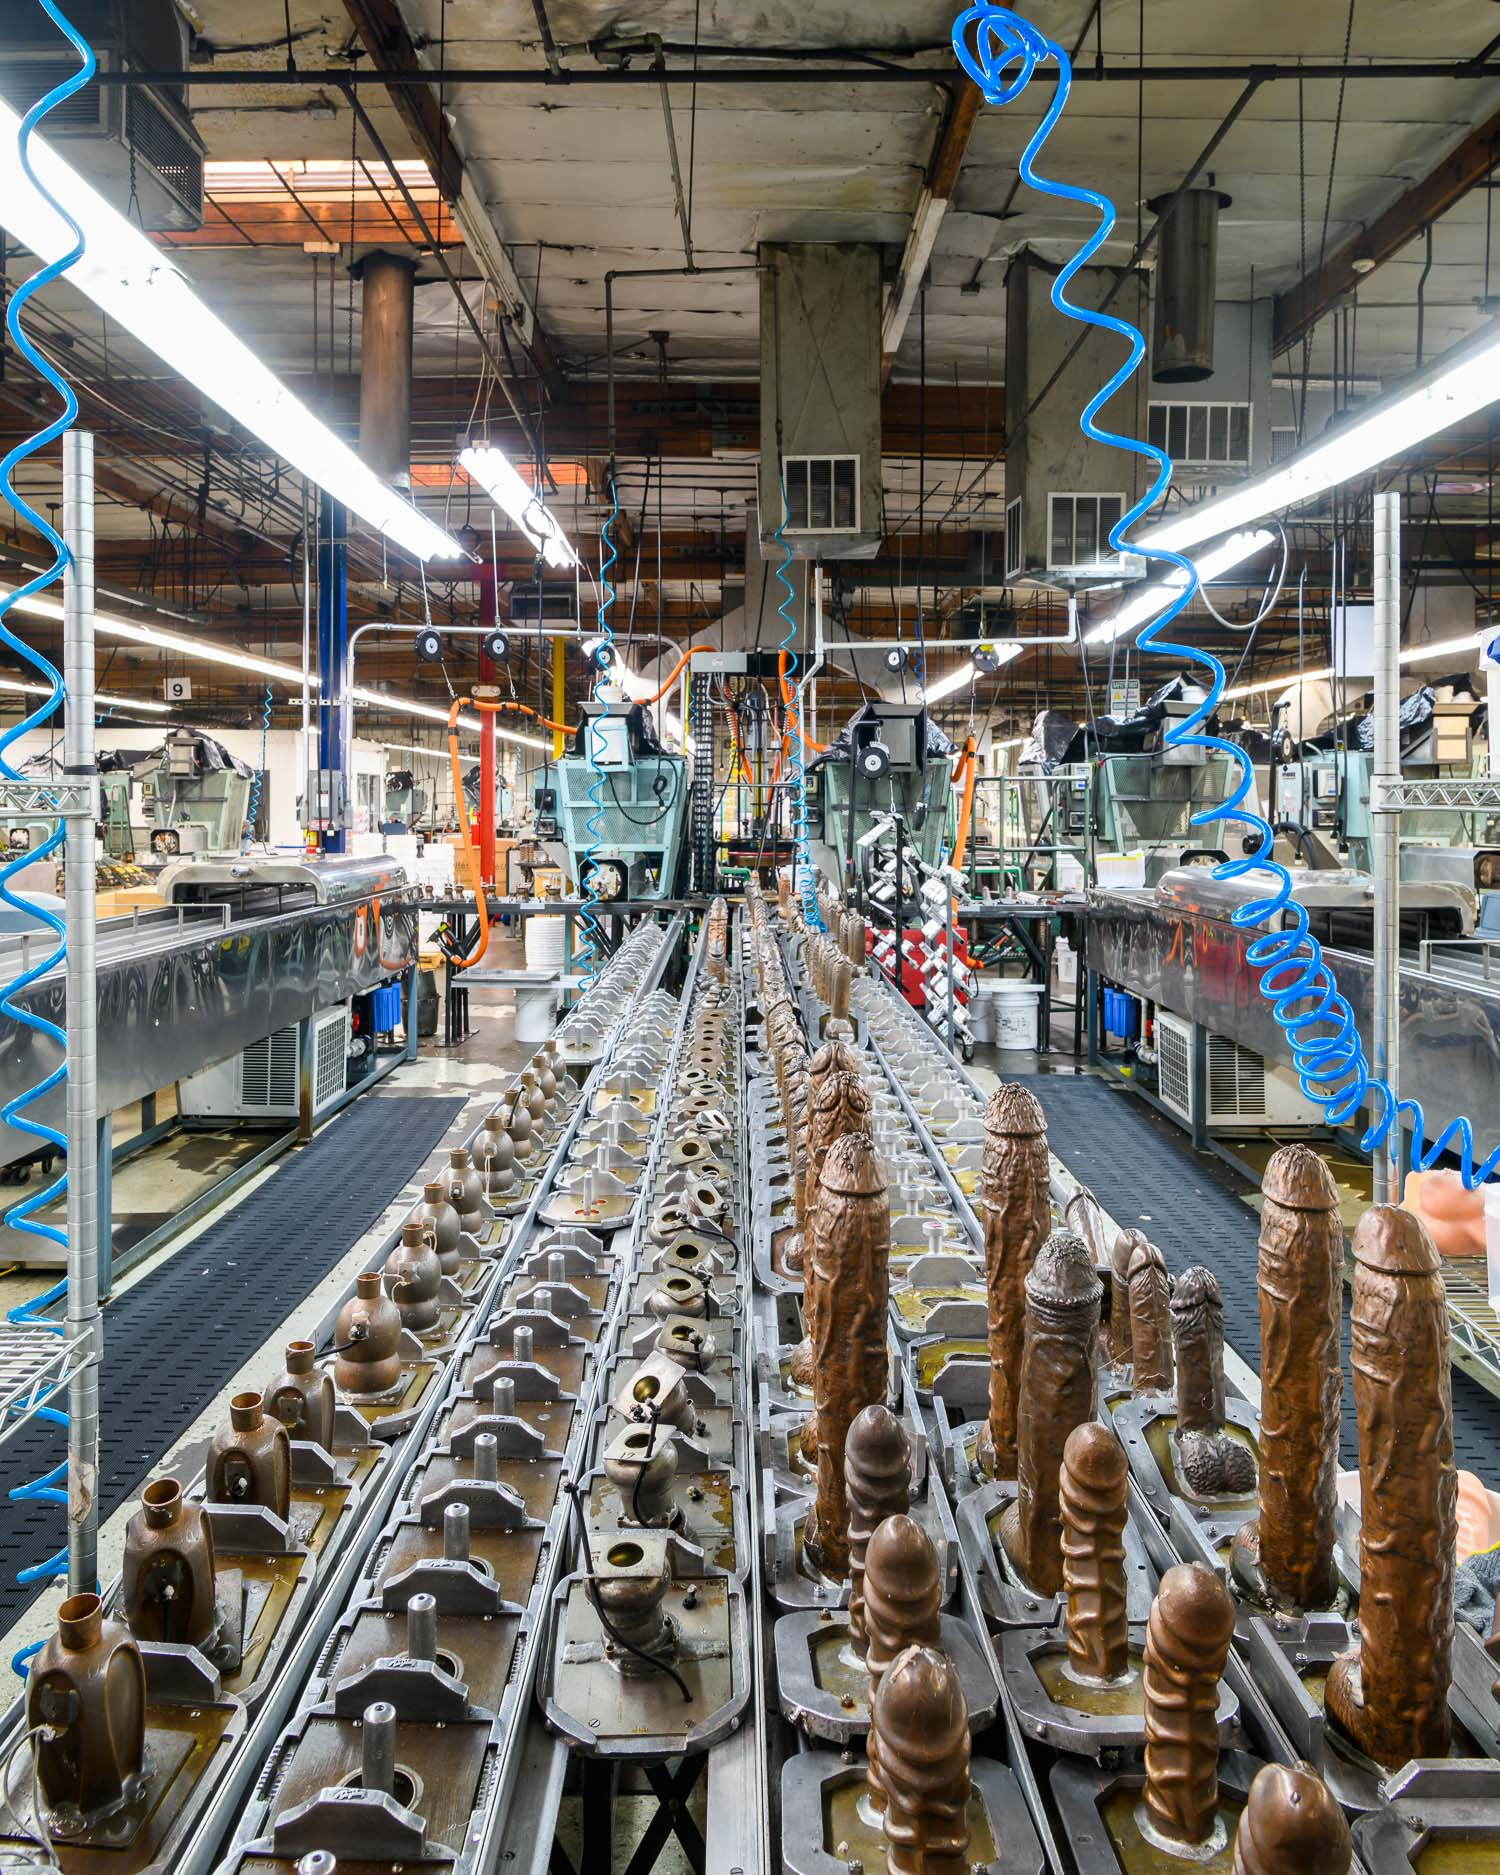 The factory floor at Doc Johnson in Los Angeles, where 450 employees produce 75,000 pleasure products per week